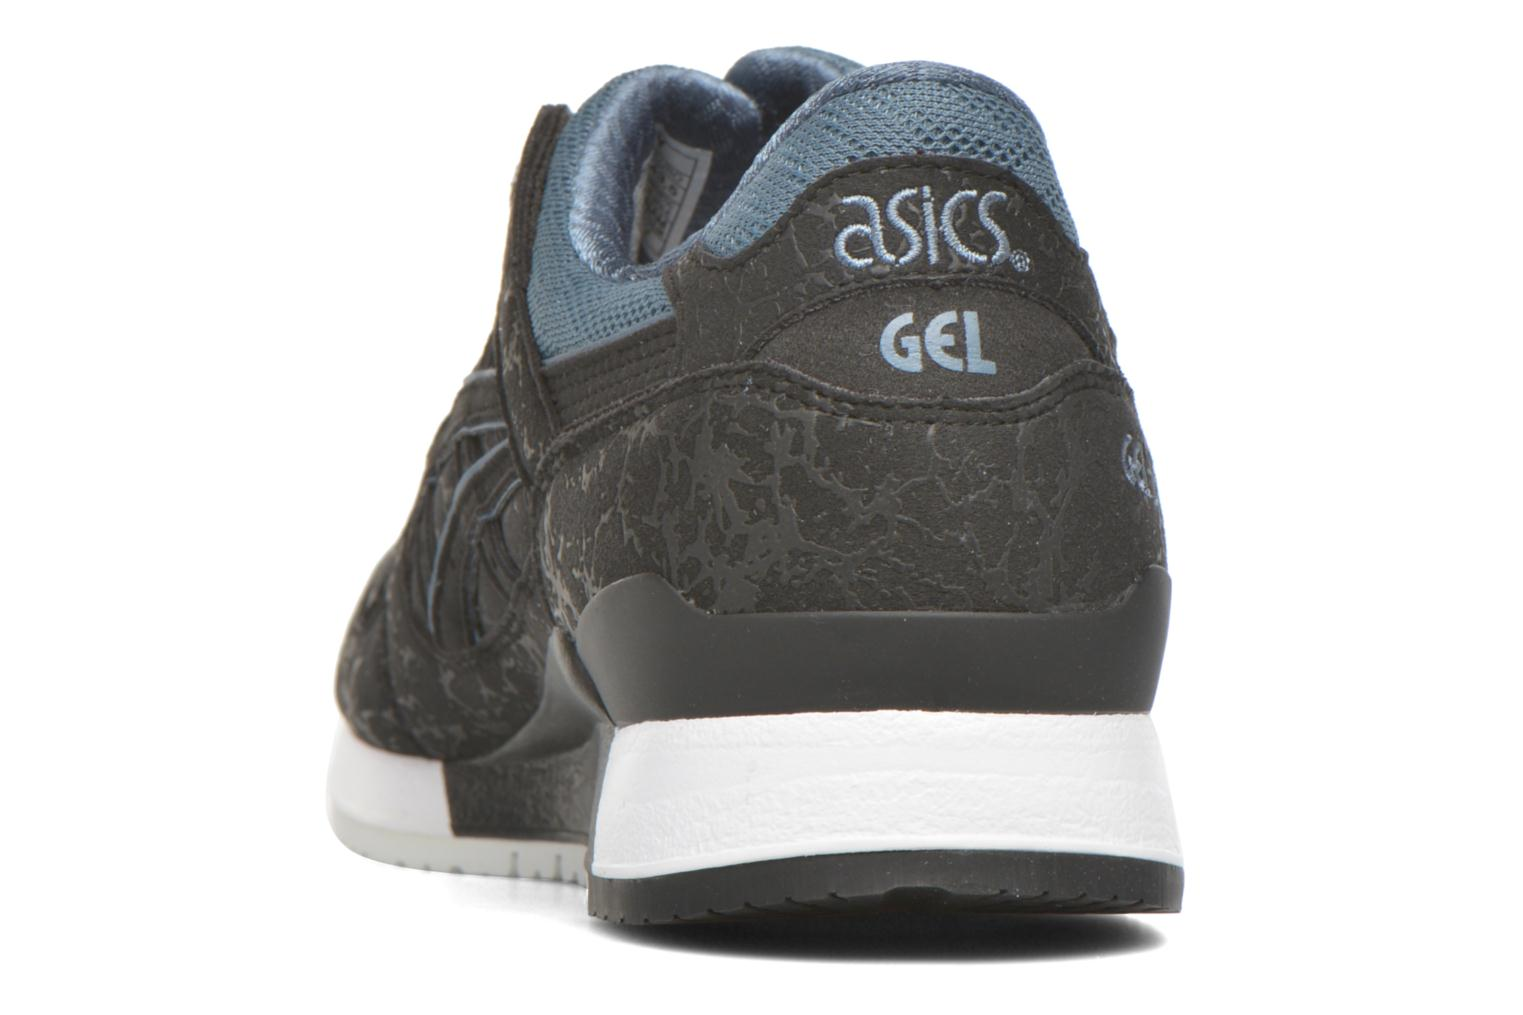 Gel-lyte III Black/Black1